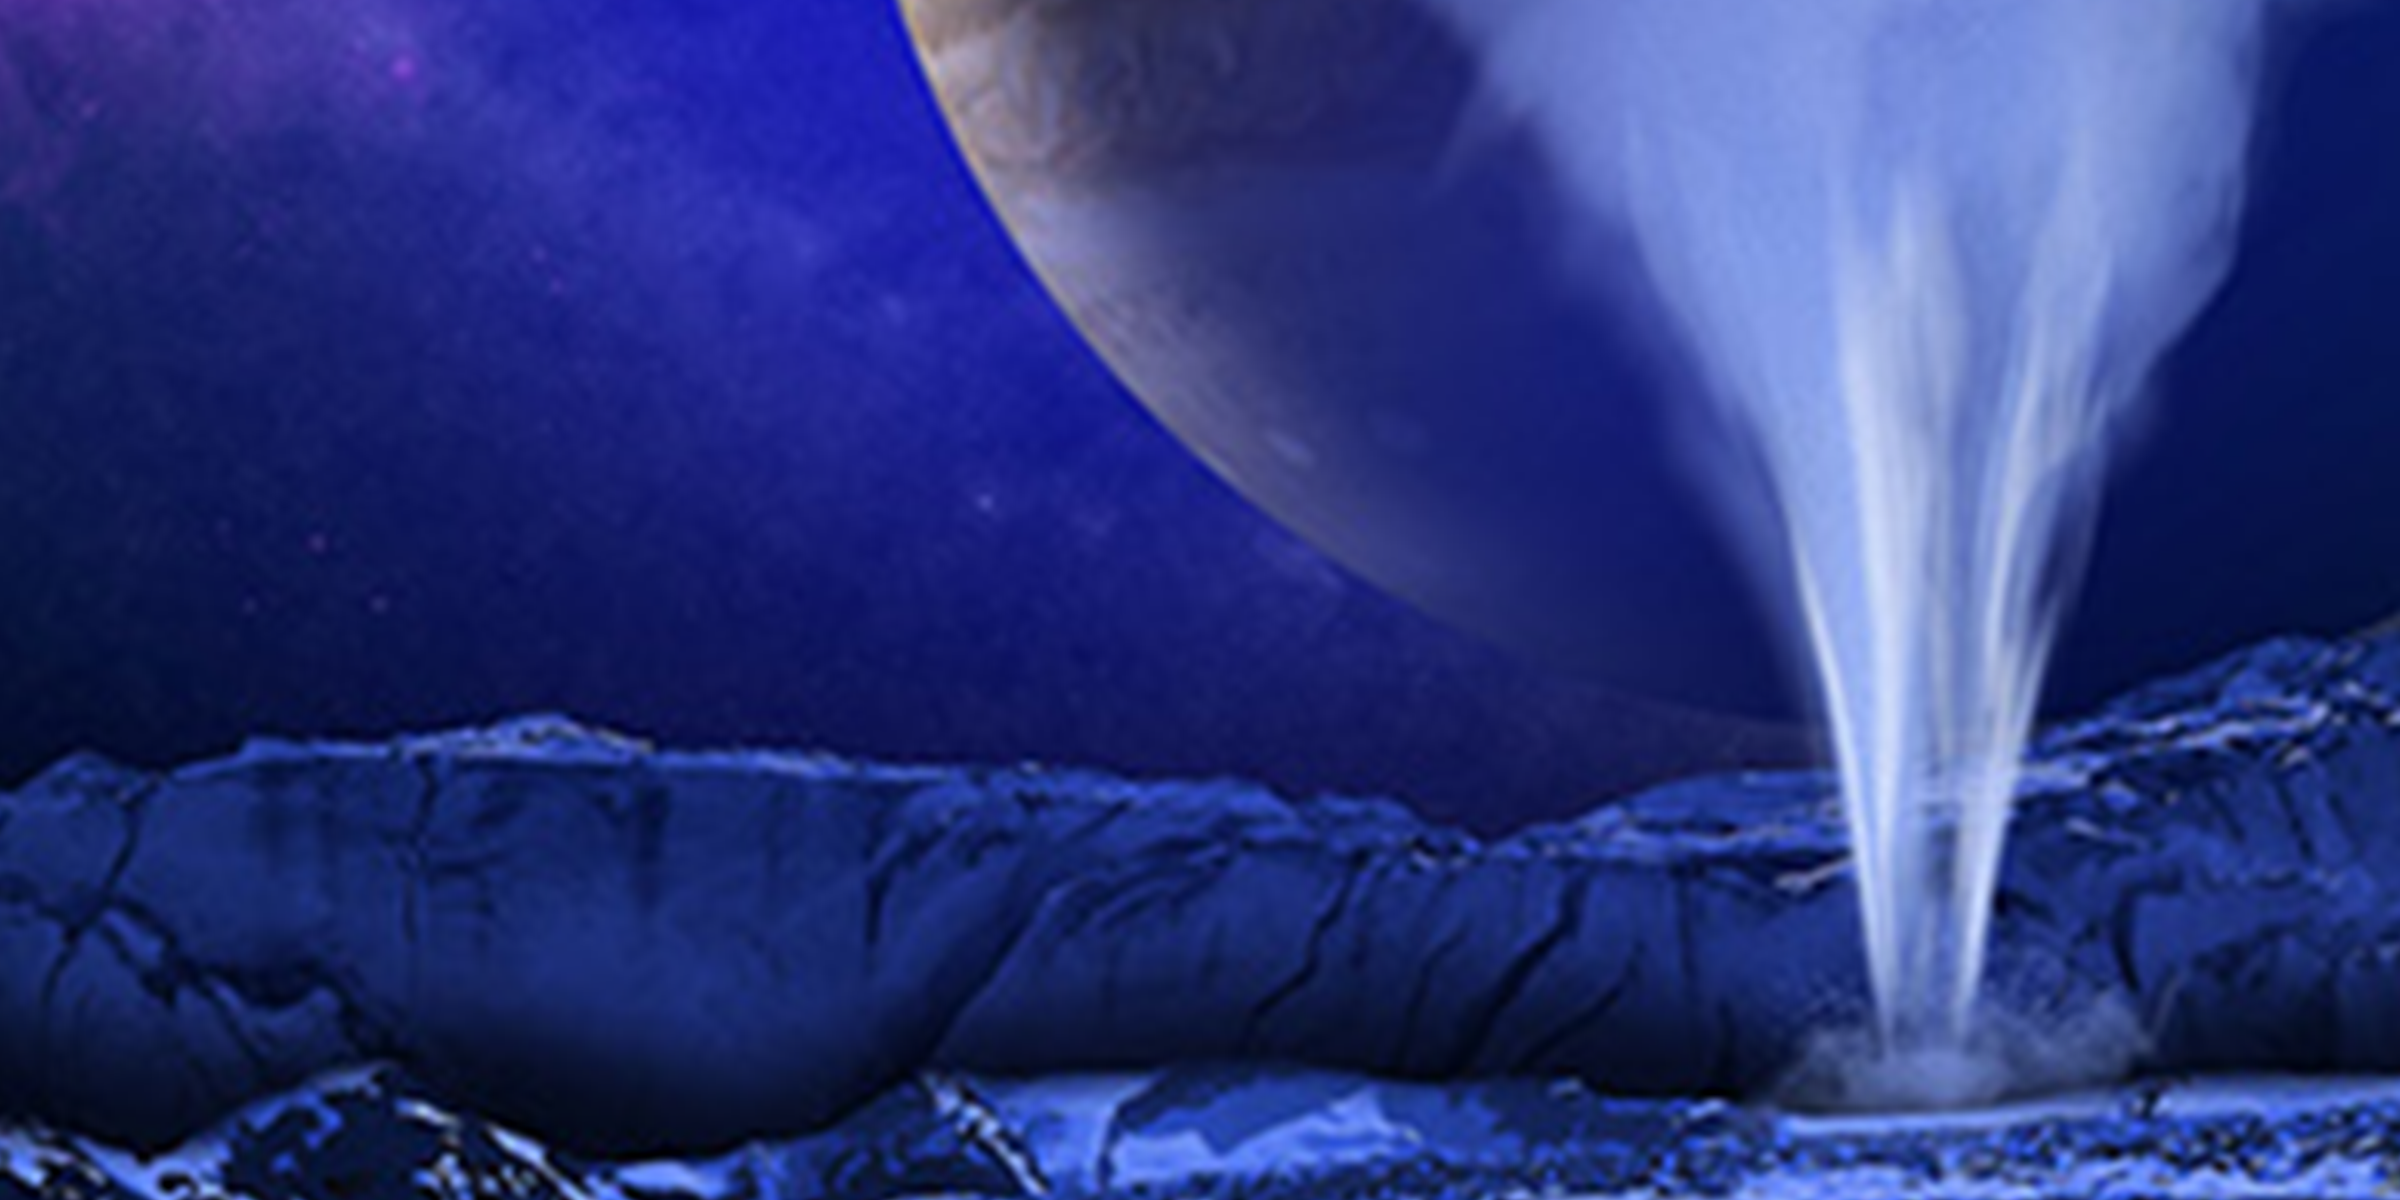 Artist's Concept of Europa Water Vapor Plume. Credit: NASA, ESA, and K. Retherford (Southwest Research Institute).